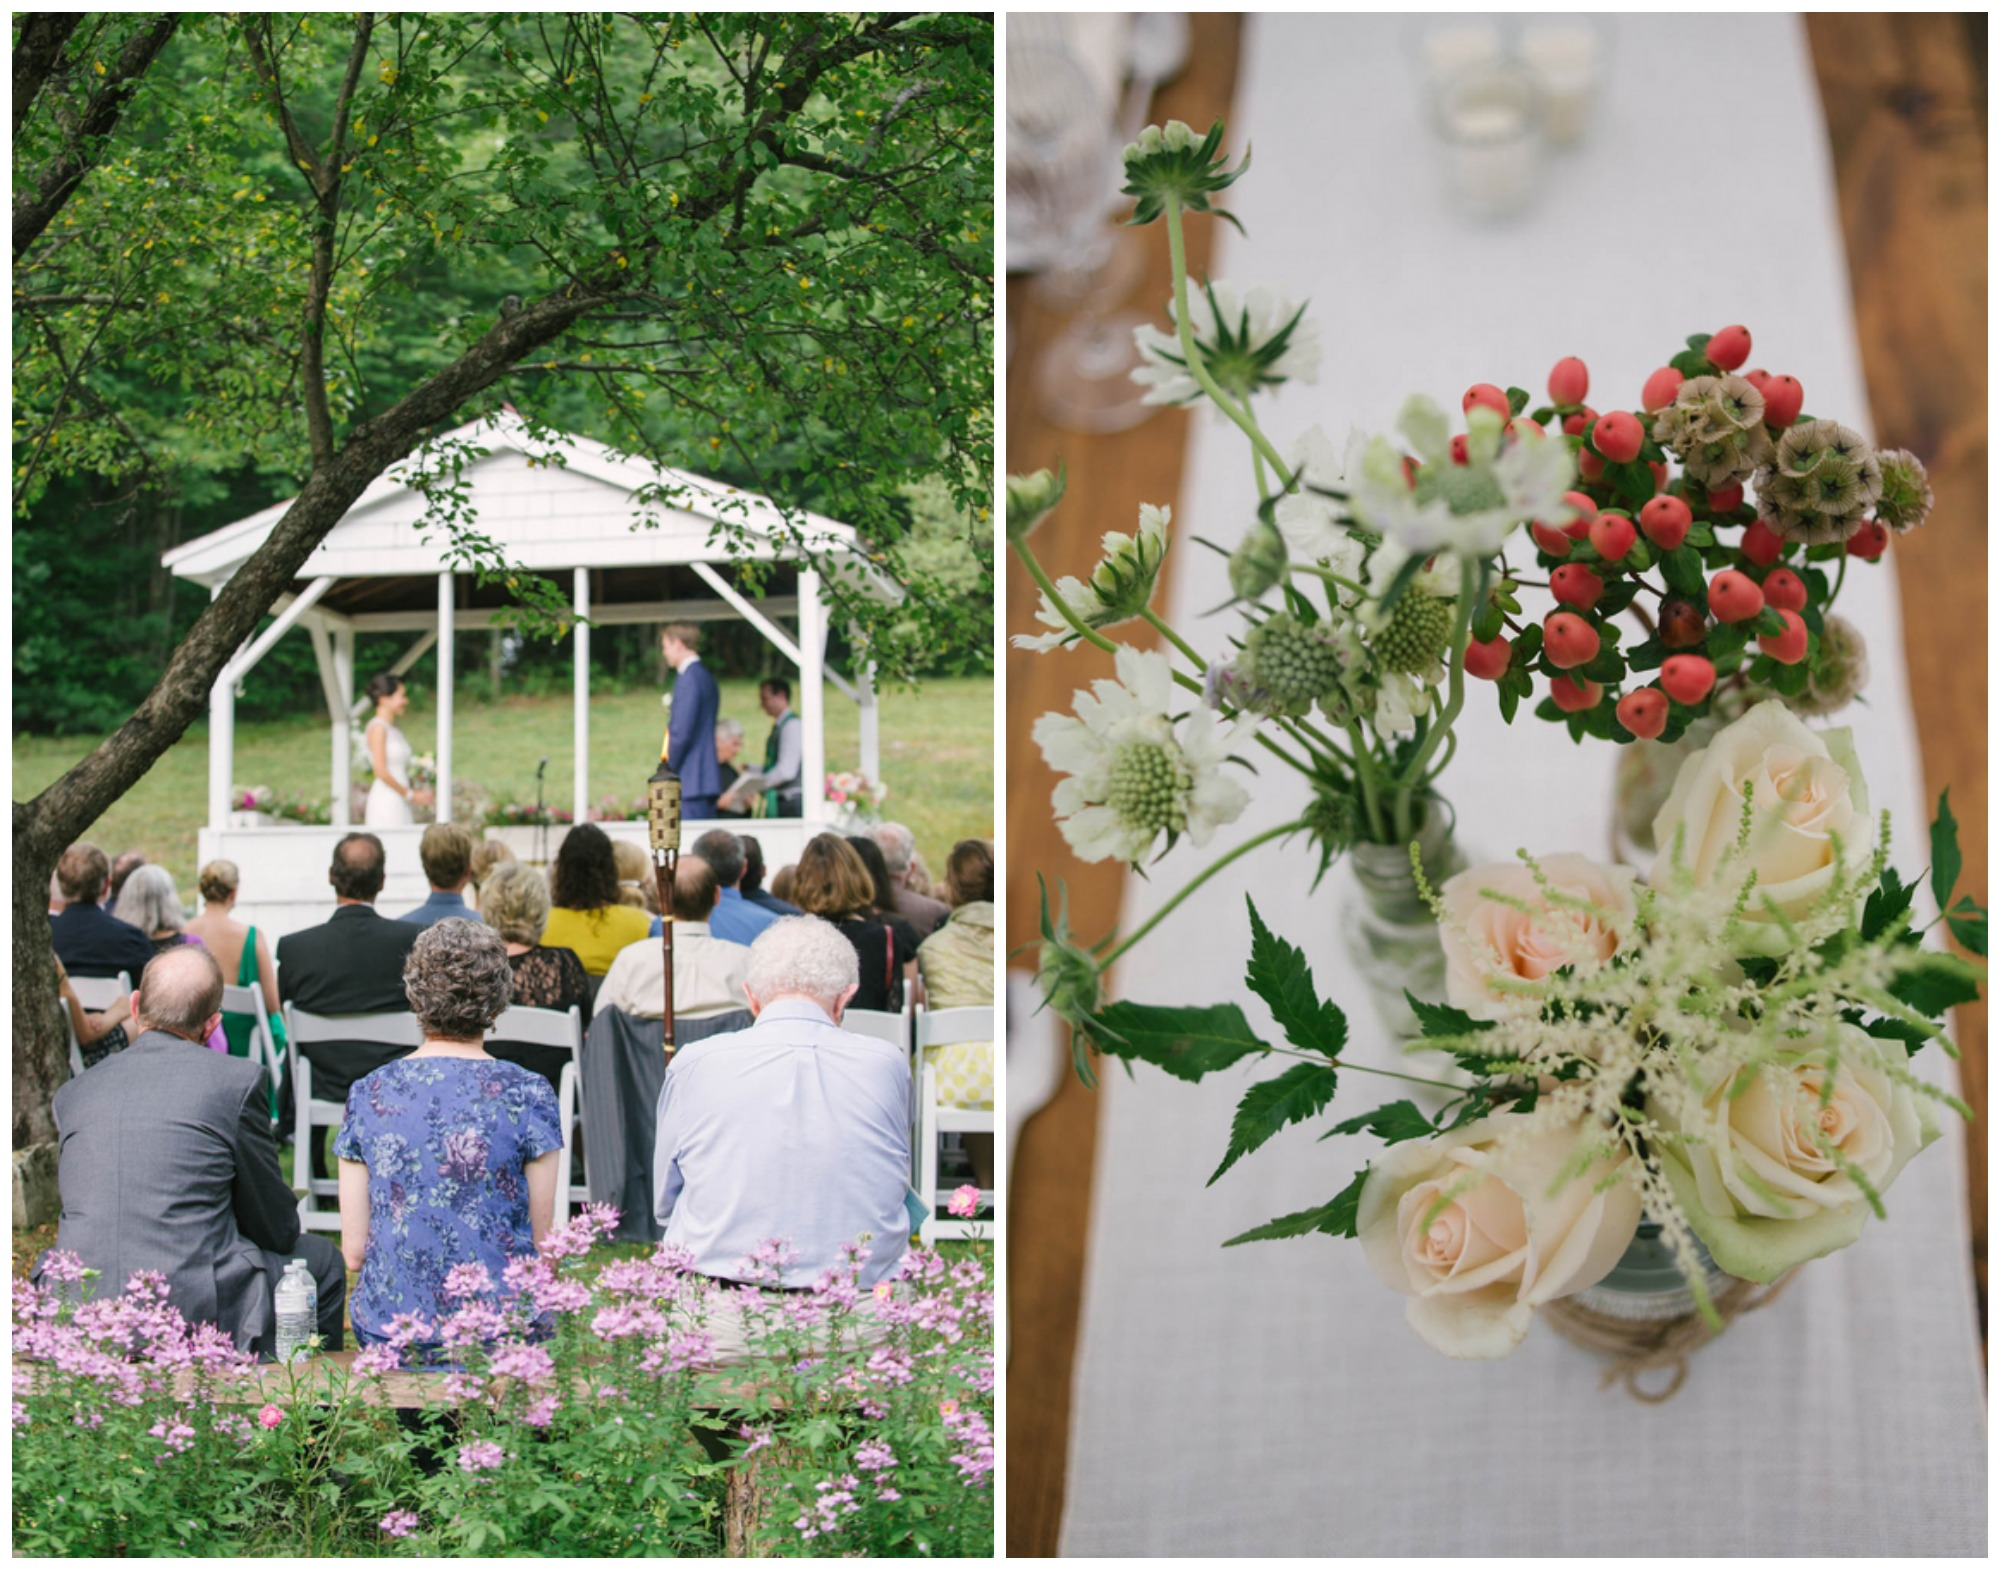 Rustic Style Wedding At Home